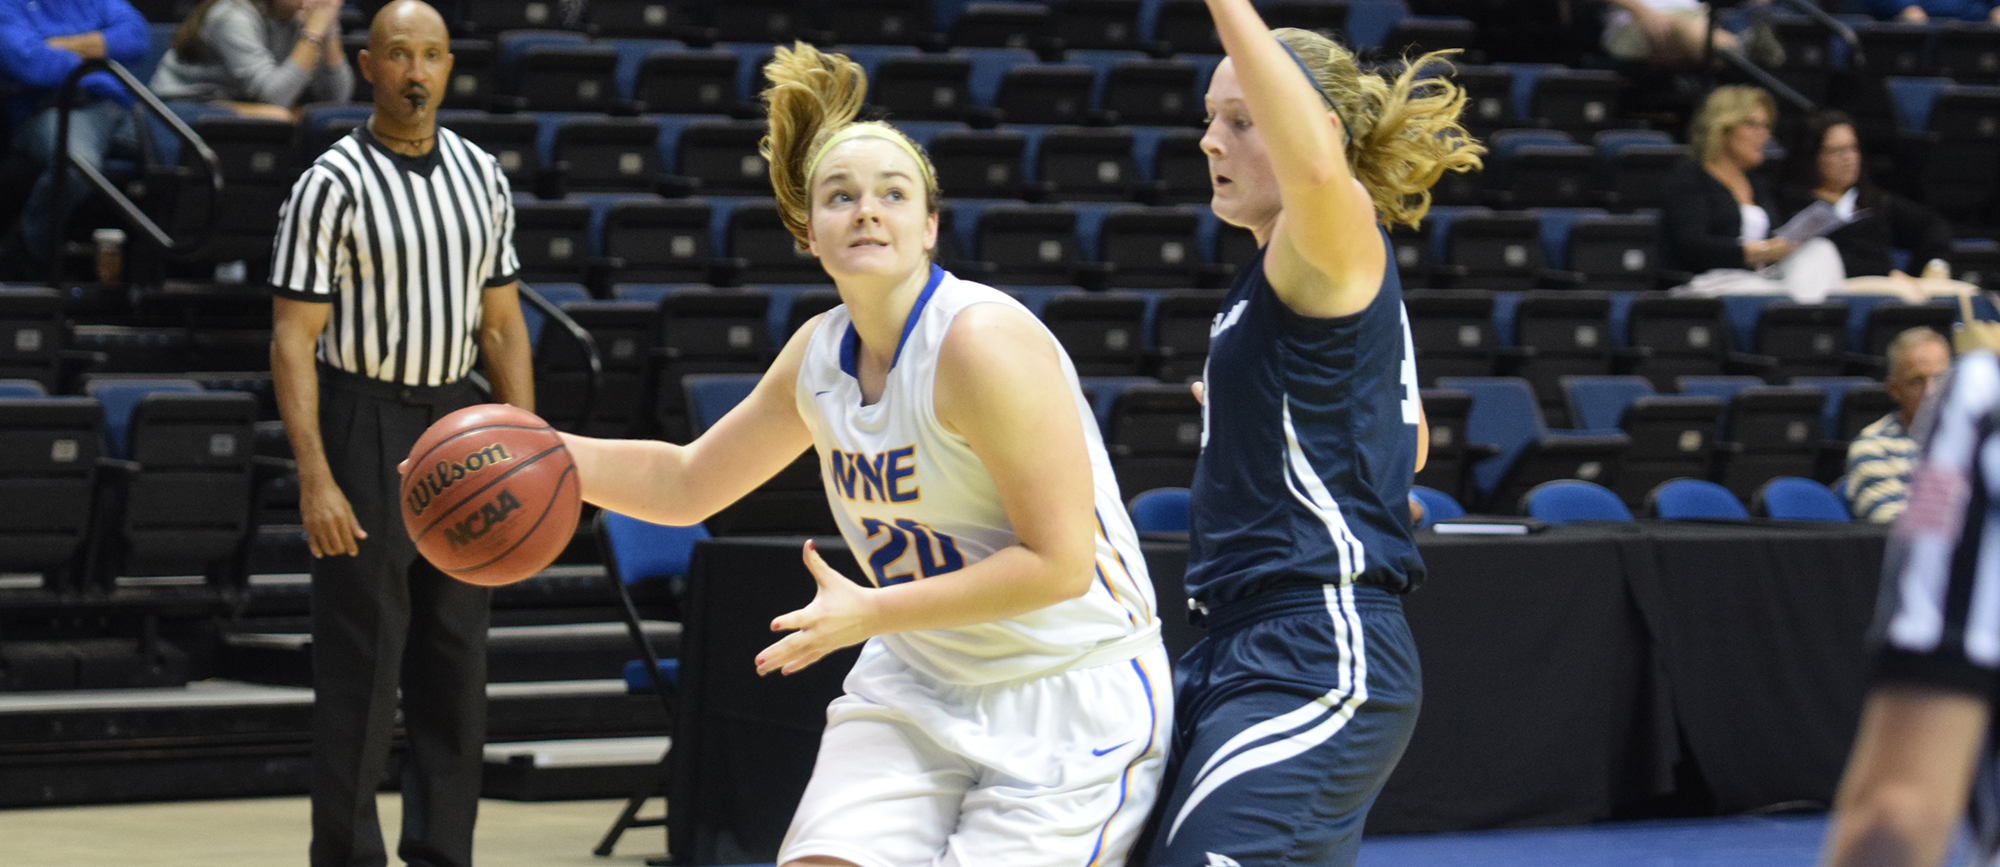 Freshman forward Emily Scurka matched her season-high with 12 points in Western New England's loss to No. 18 Messiah at the Land of Magic Classic on Thursday.